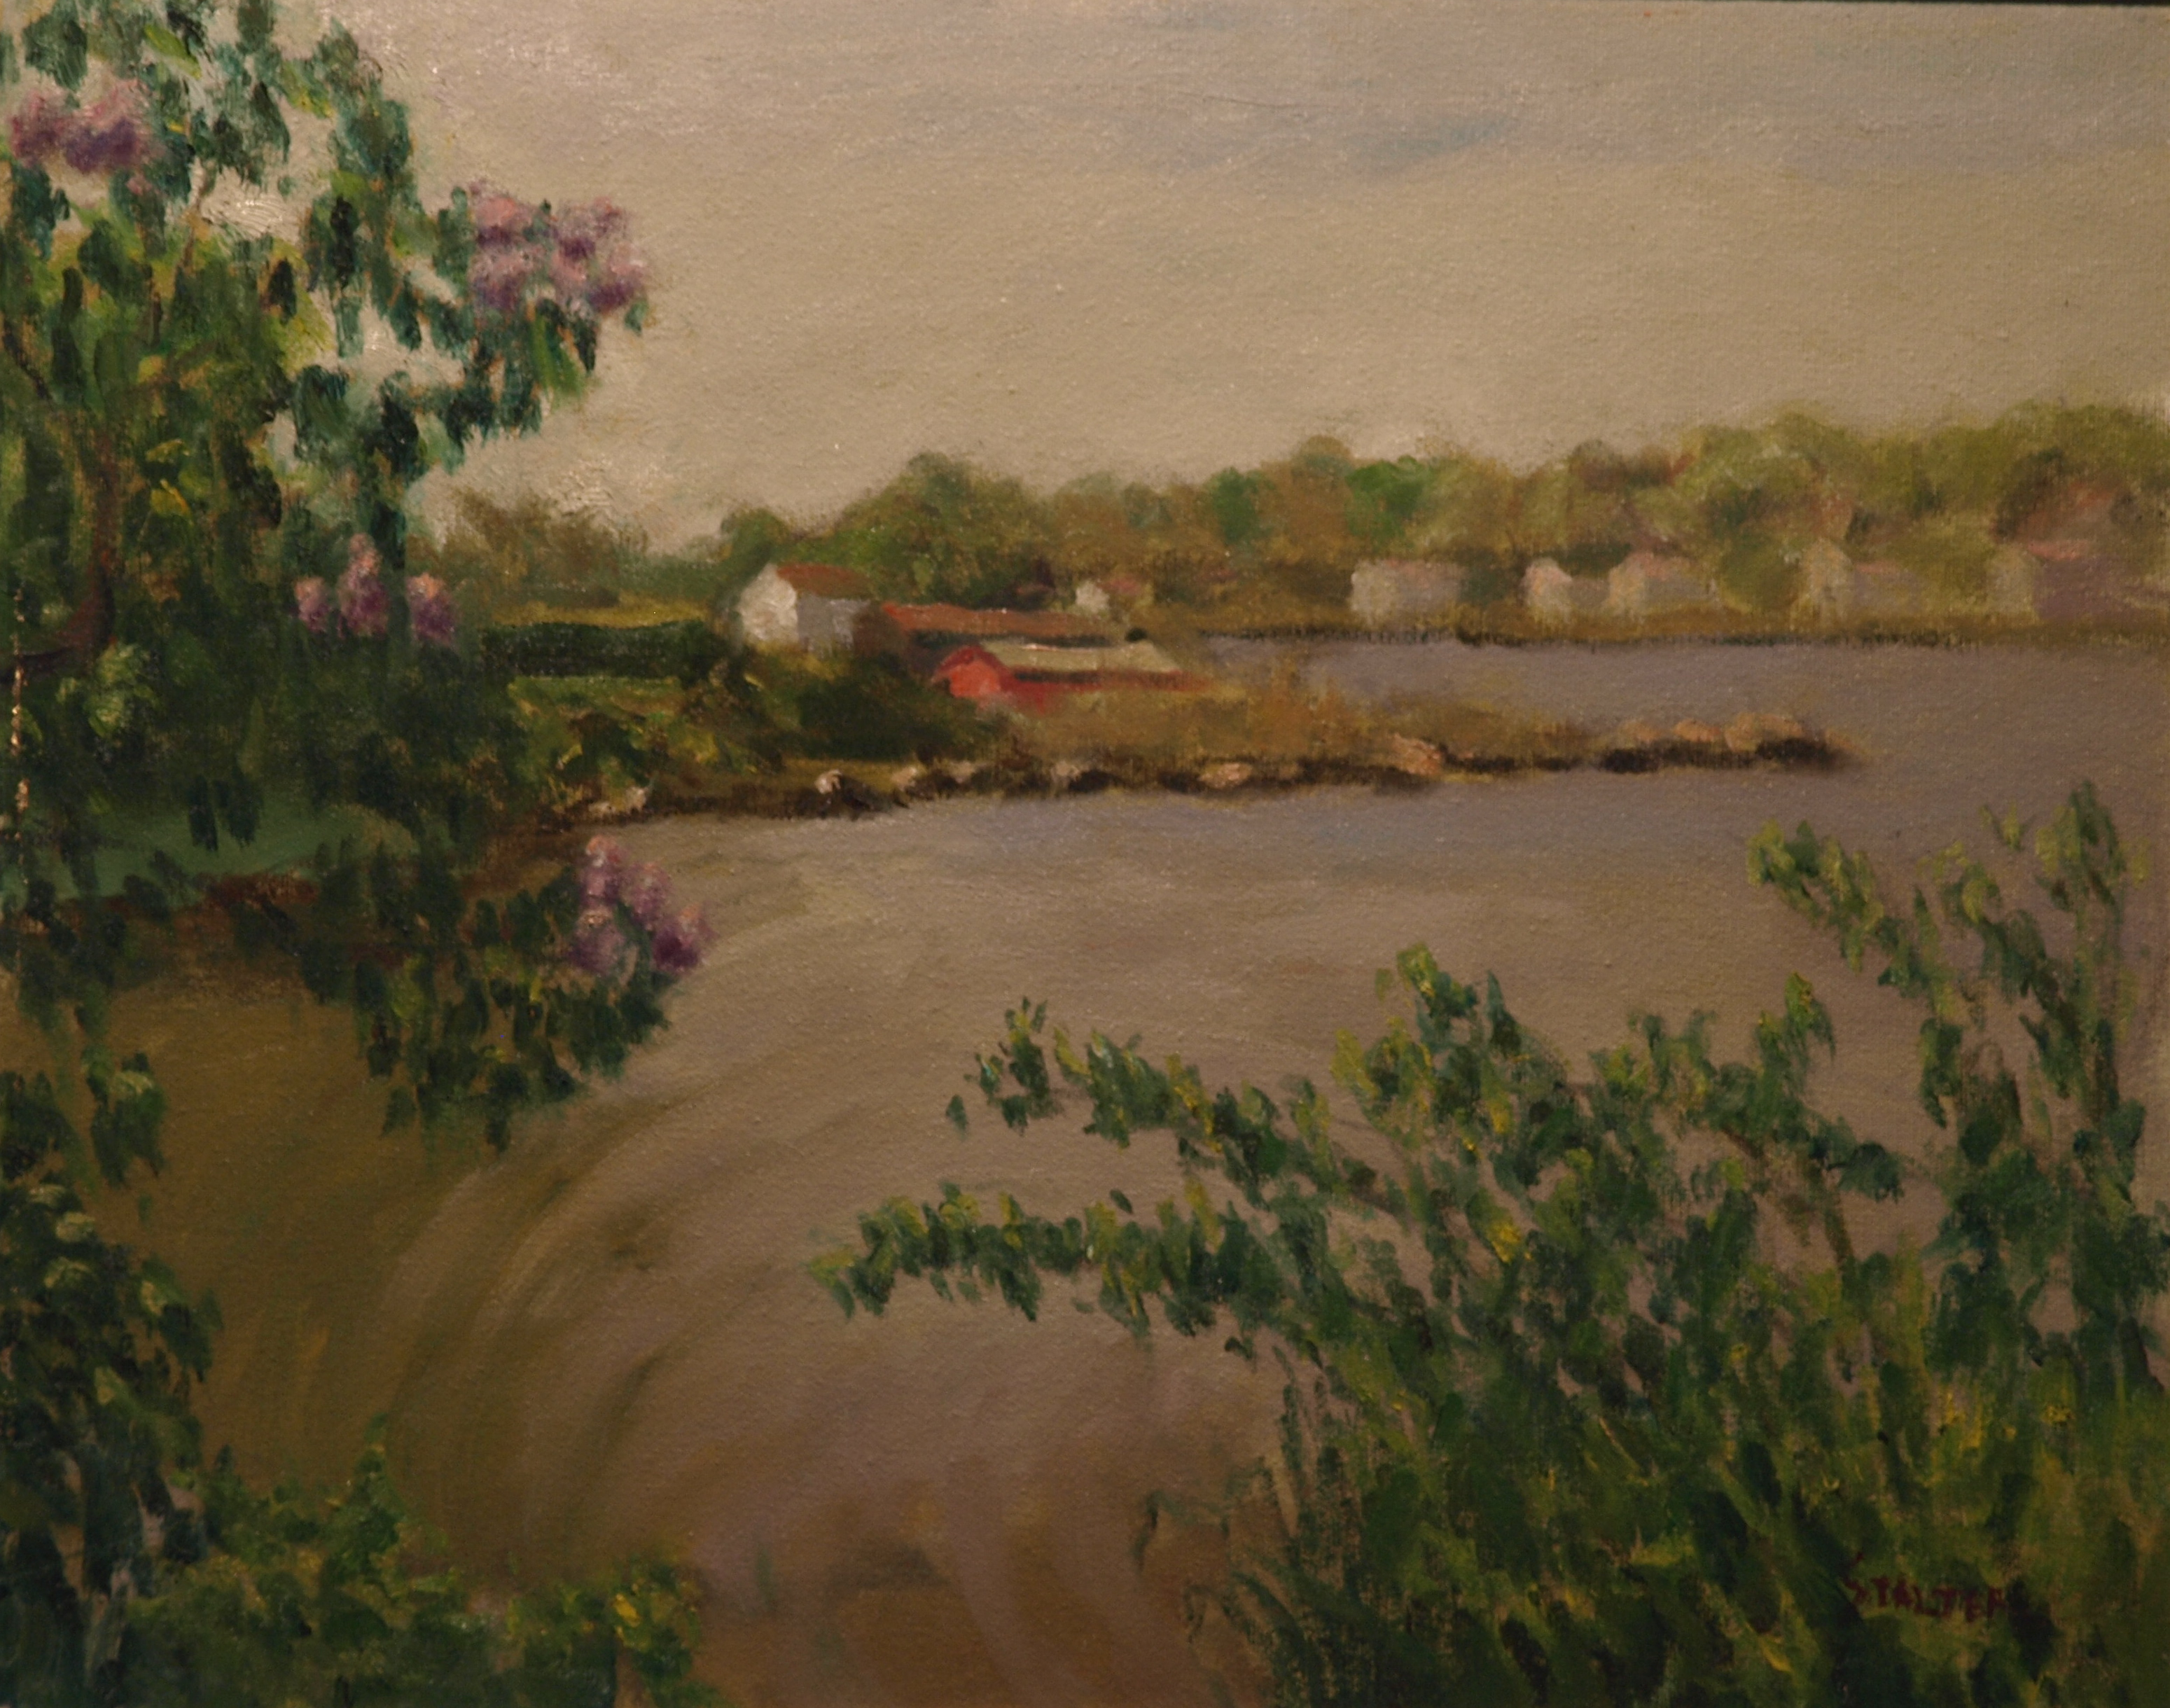 View from Kitchen Little, Oil on Canvas, 16 x 20 Inches, by Richard Stalter, $650